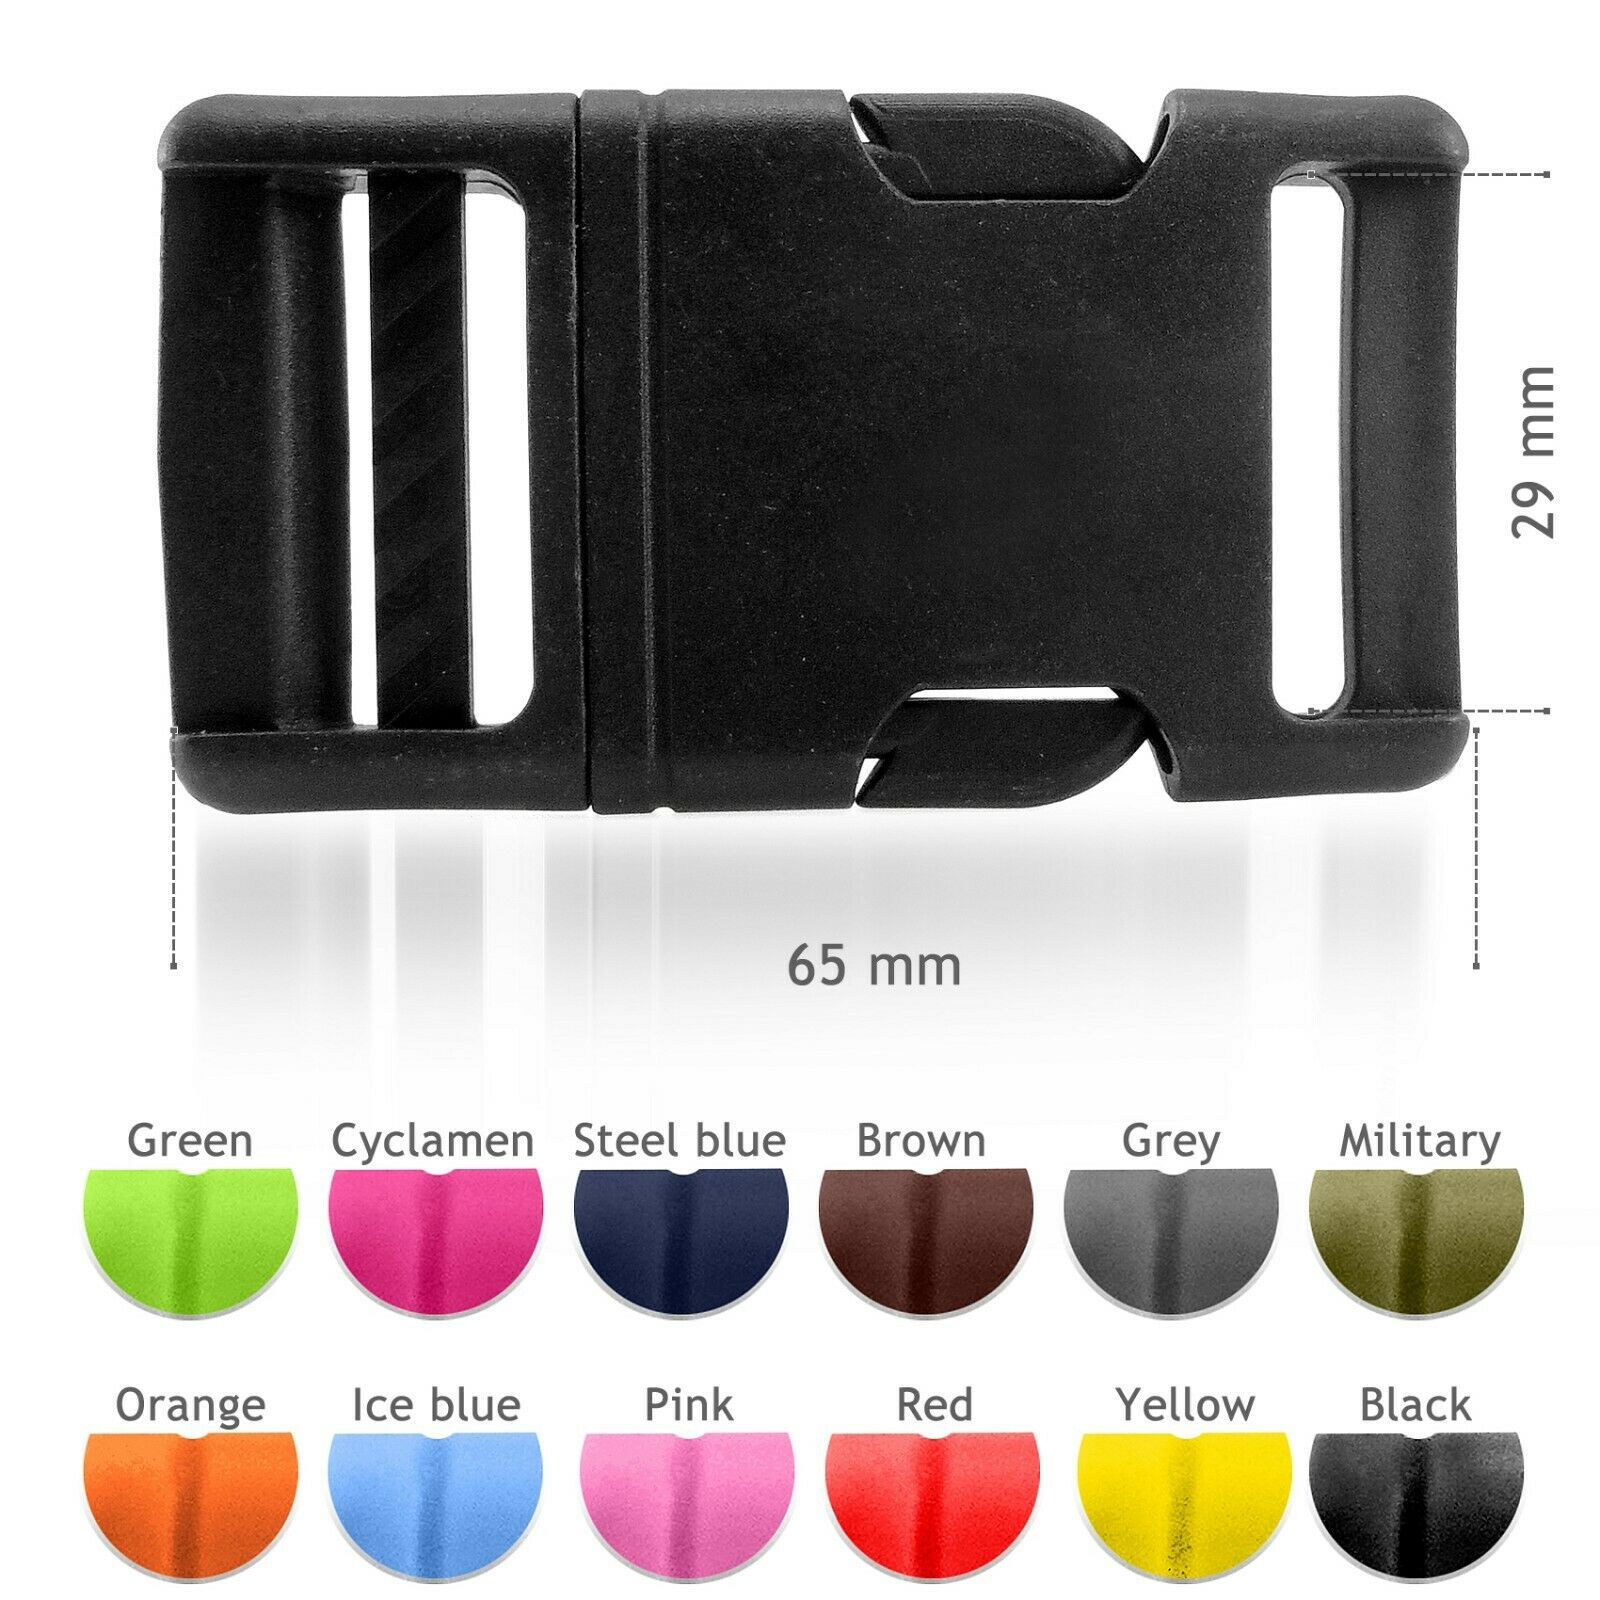 AD5 Ice Blue Plastic delrin Side Release Buckles for Webbing Bags Straps Clips 30 mm 10 pcs